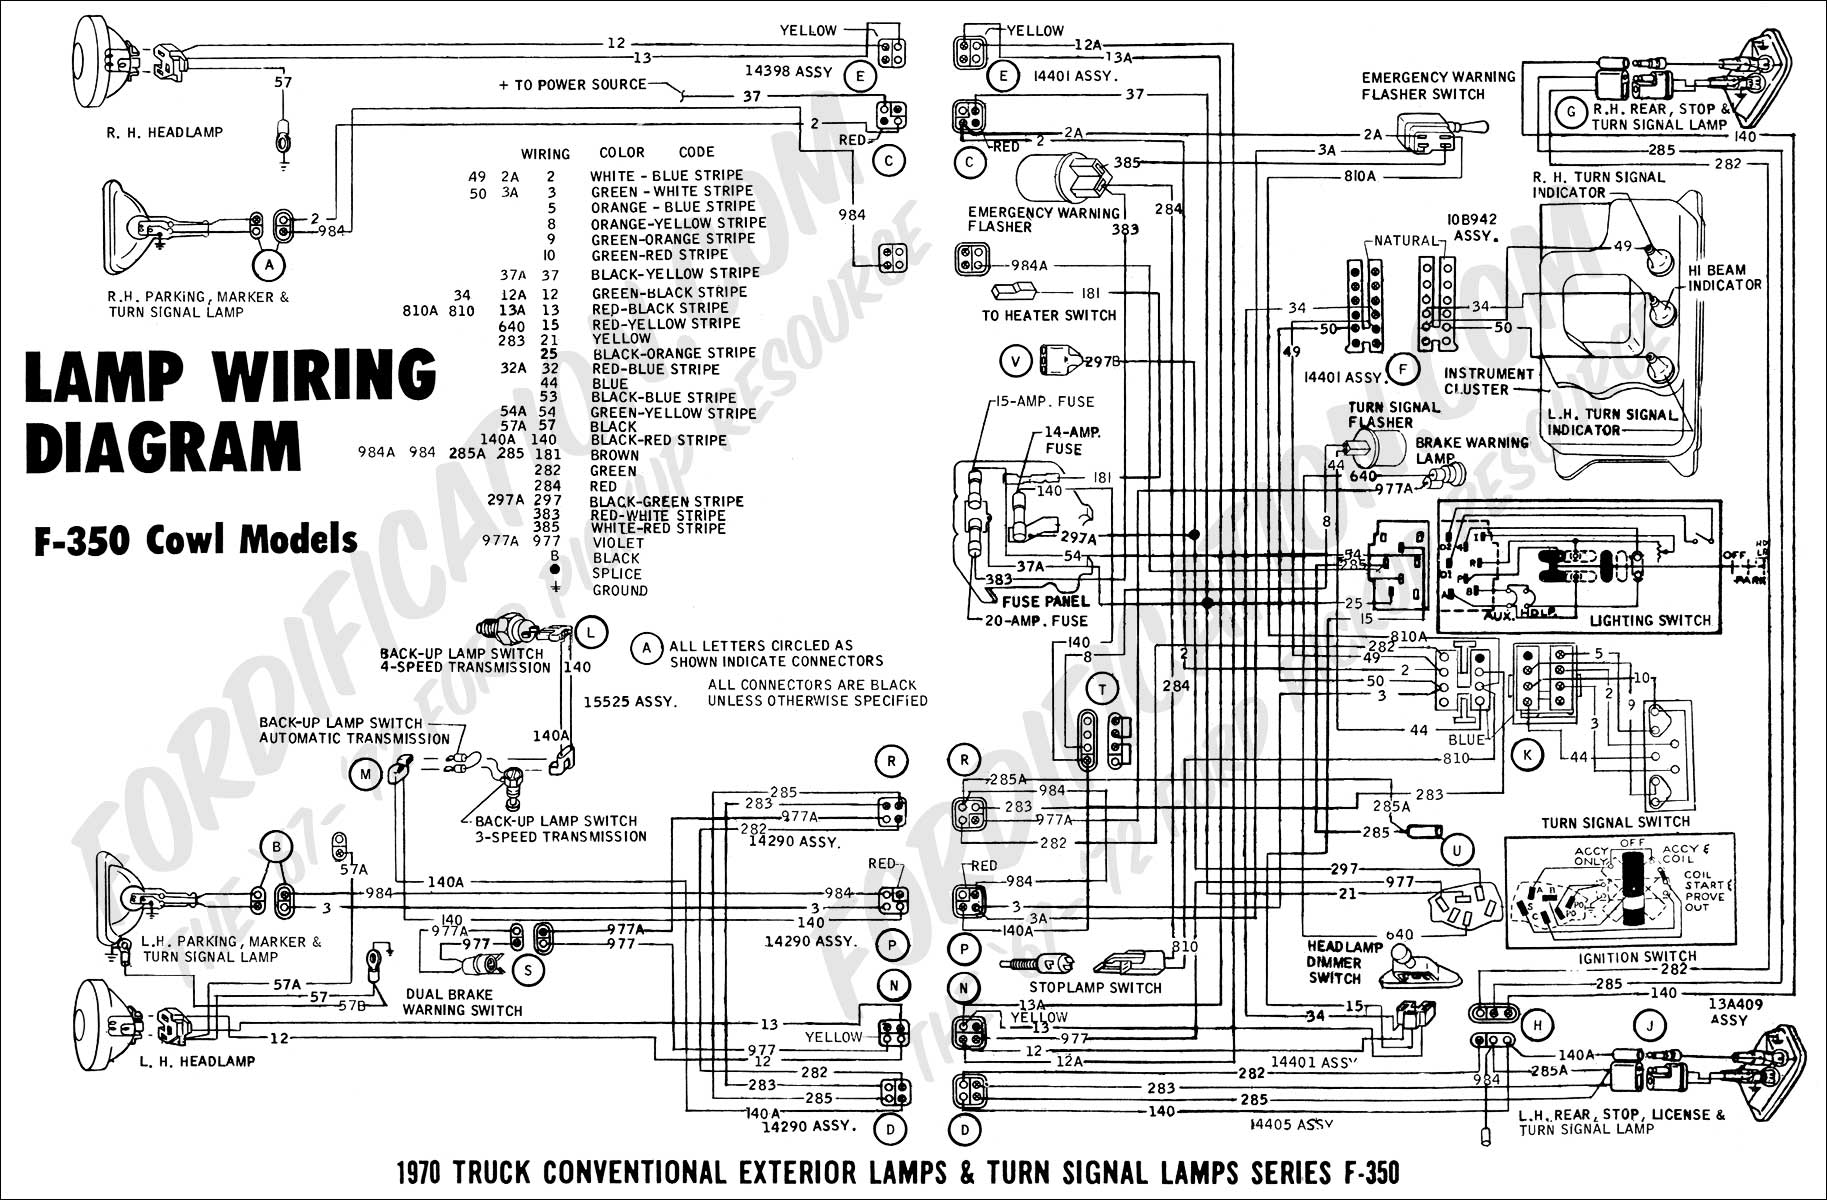 02 F 350 Wiring Diagram | Wiring Diagram  Mins Wiring Diagram on snatch block diagrams, lighting diagrams, honda motorcycle repair diagrams, switch diagrams, led circuit diagrams, motor diagrams, friendship bracelet diagrams, electrical diagrams, smart car diagrams, hvac diagrams, transformer diagrams, troubleshooting diagrams, series and parallel circuits diagrams, sincgars radio configurations diagrams, electronic circuit diagrams, engine diagrams, pinout diagrams, gmc fuse box diagrams, internet of things diagrams, battery diagrams,